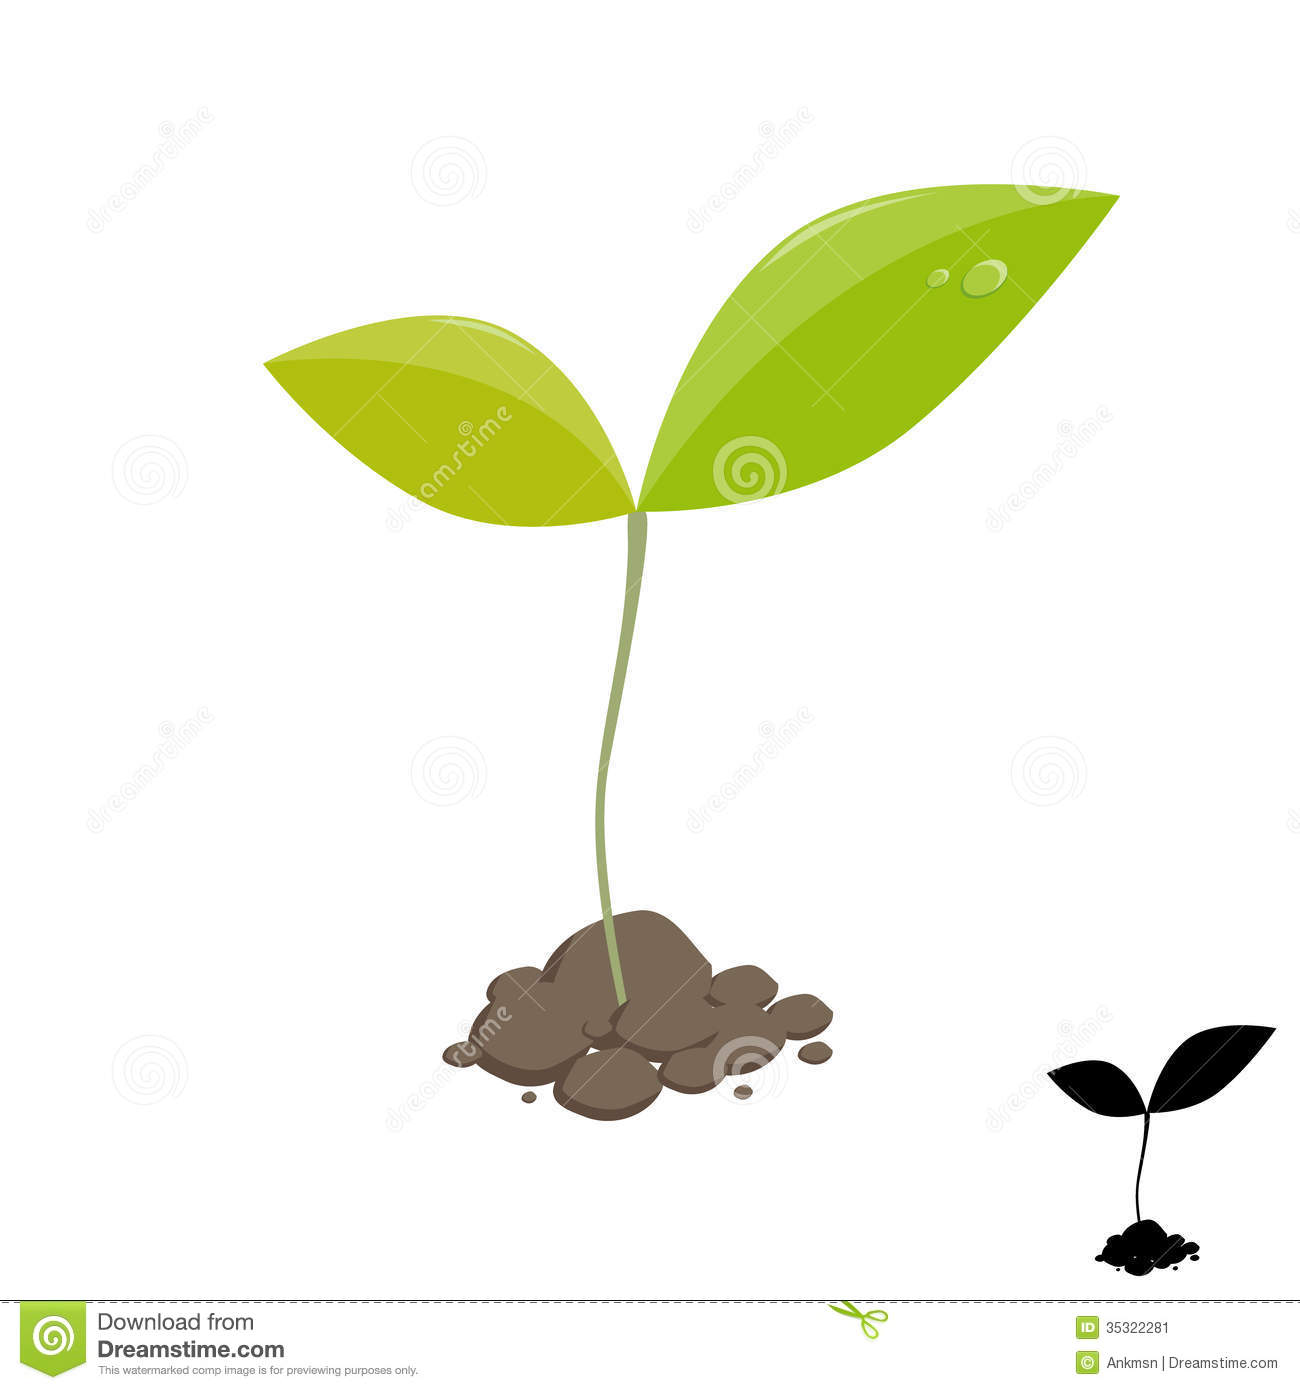 Plant clipart little plant Seed Plant Clipart Sprouting Stock